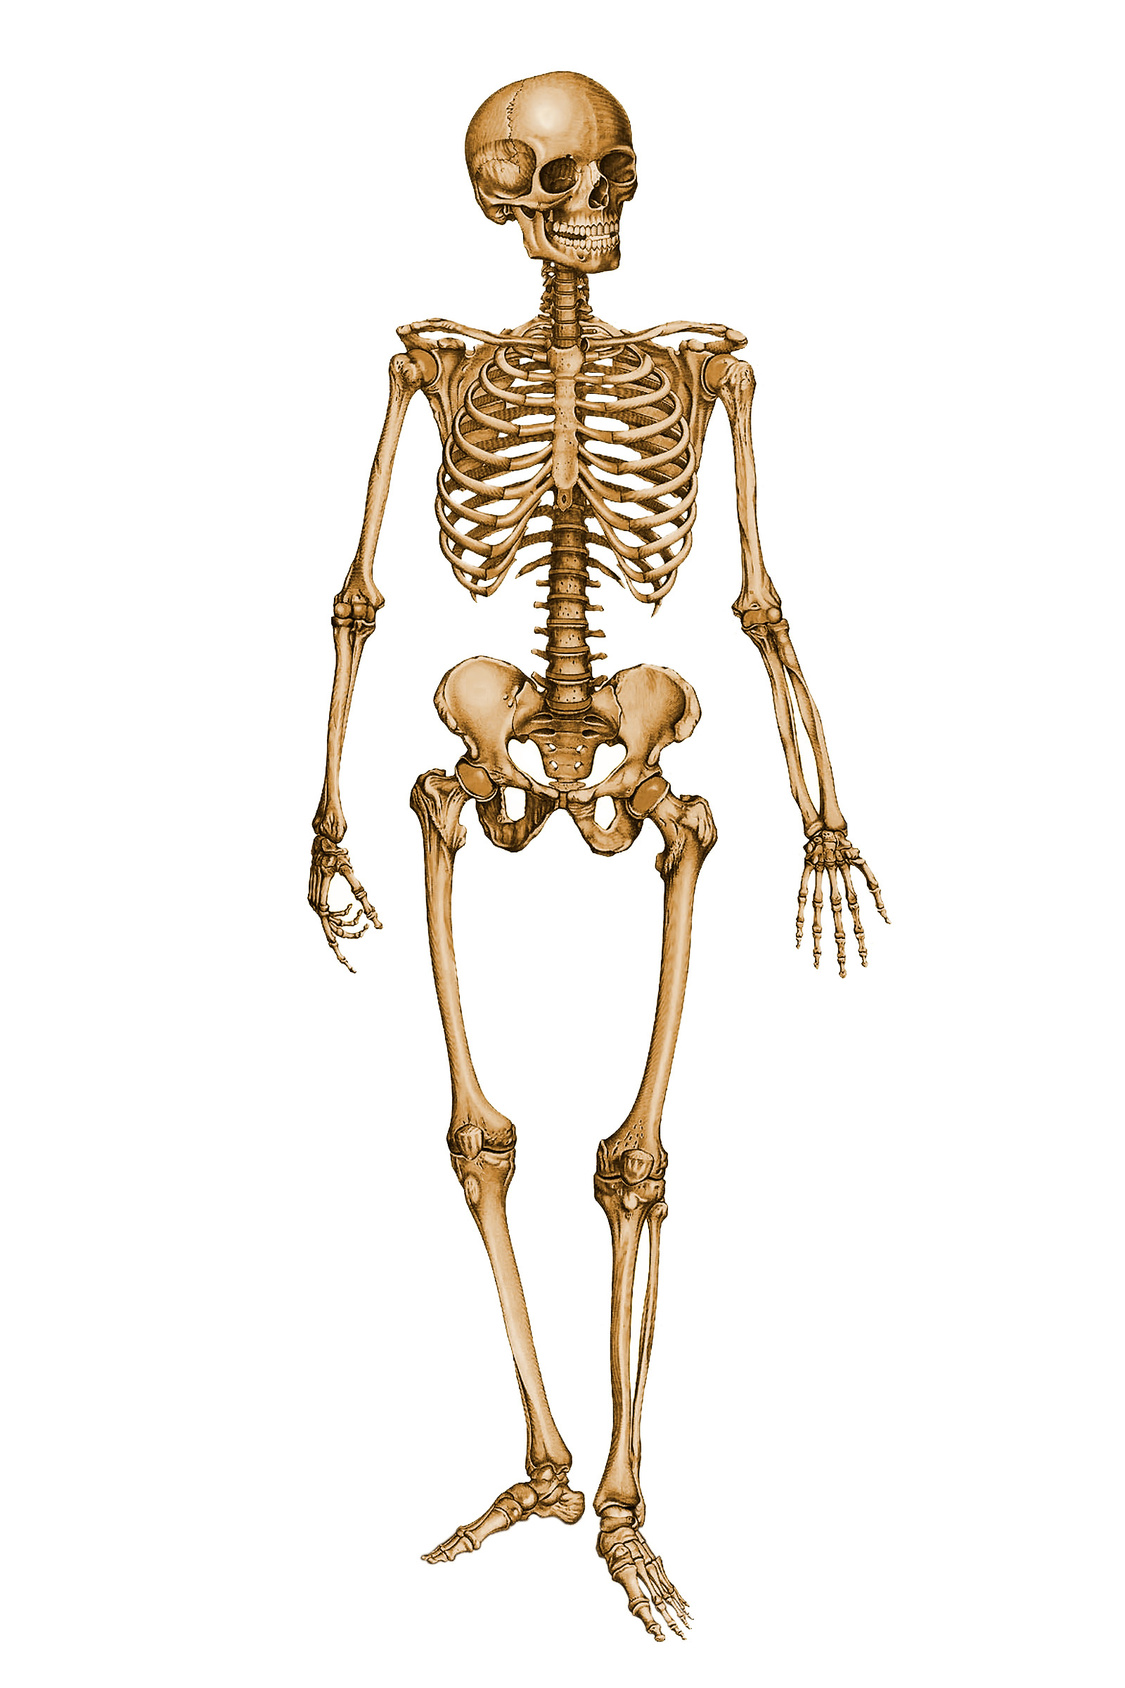 Human Skeleton image #5314 - Skeleton PNG - Skeleton HD PNG